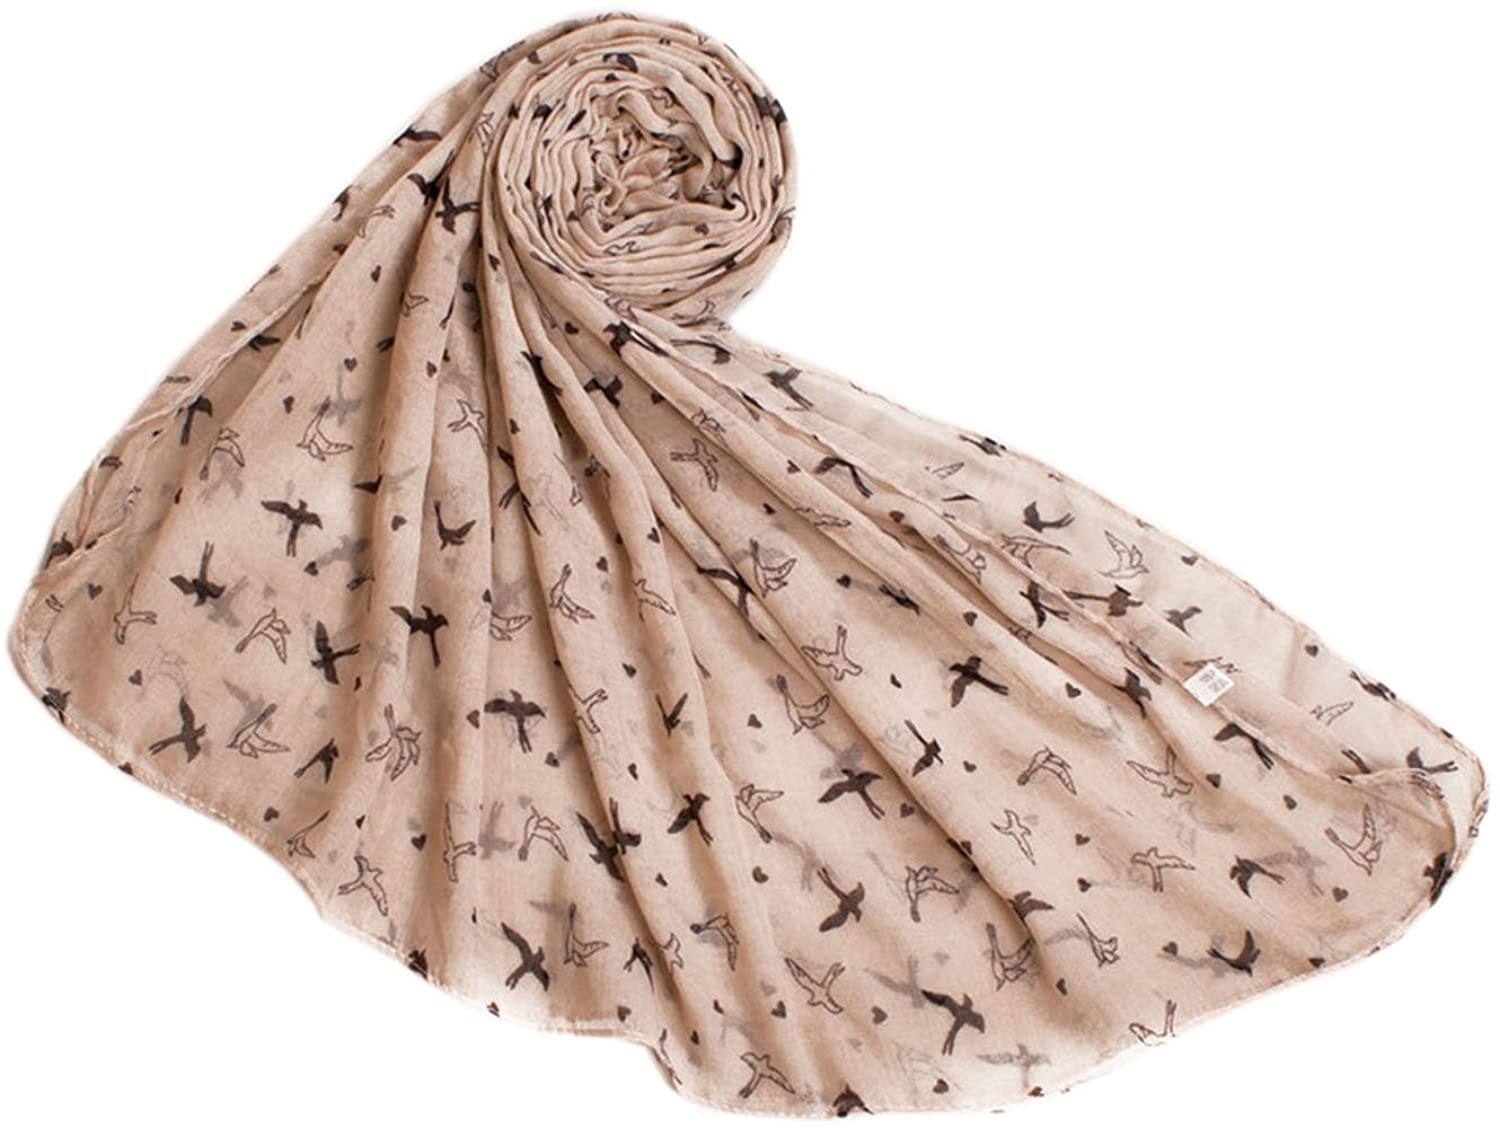 Bettyhome Fashion Girls Swallow Pattern Voile Women's Large Beach Scarf Shawl Lightweight